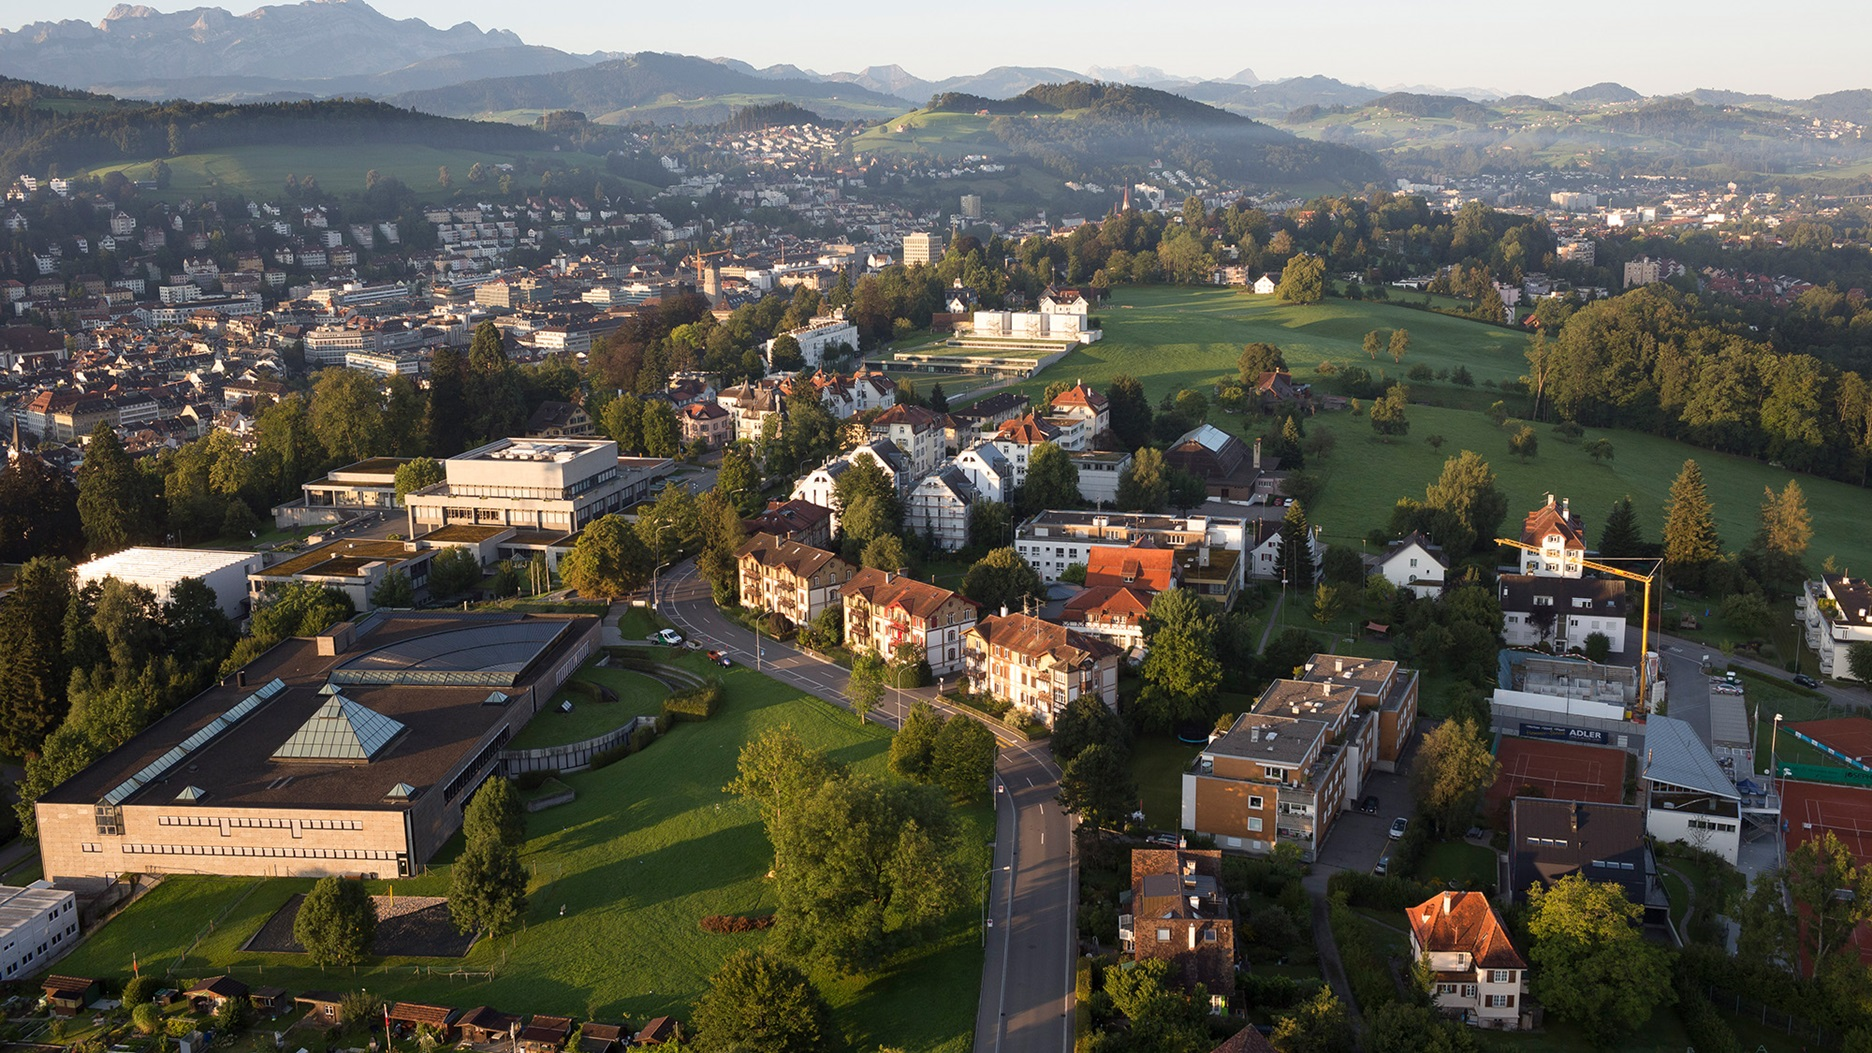 Panorama photo of HSG and St.Gallen